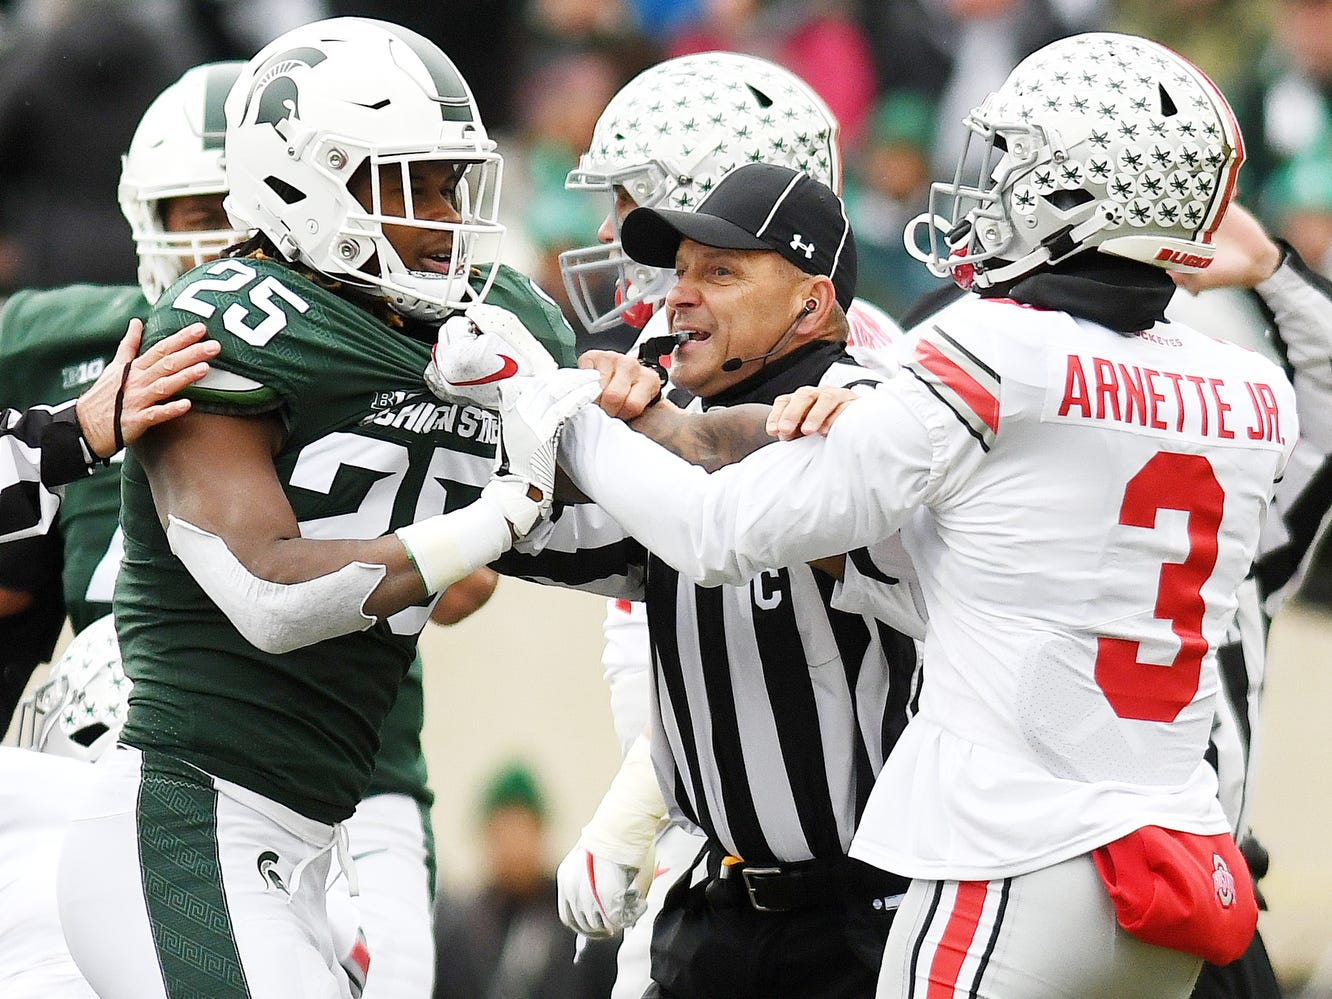 A ref breaks up a tussle between Michigan State's Darrell Stewart Jr., left, and Ohio State's Damon Arnette Jr. during the first quarter on Saturday, Nov. 10, 2018, in East Lansing.